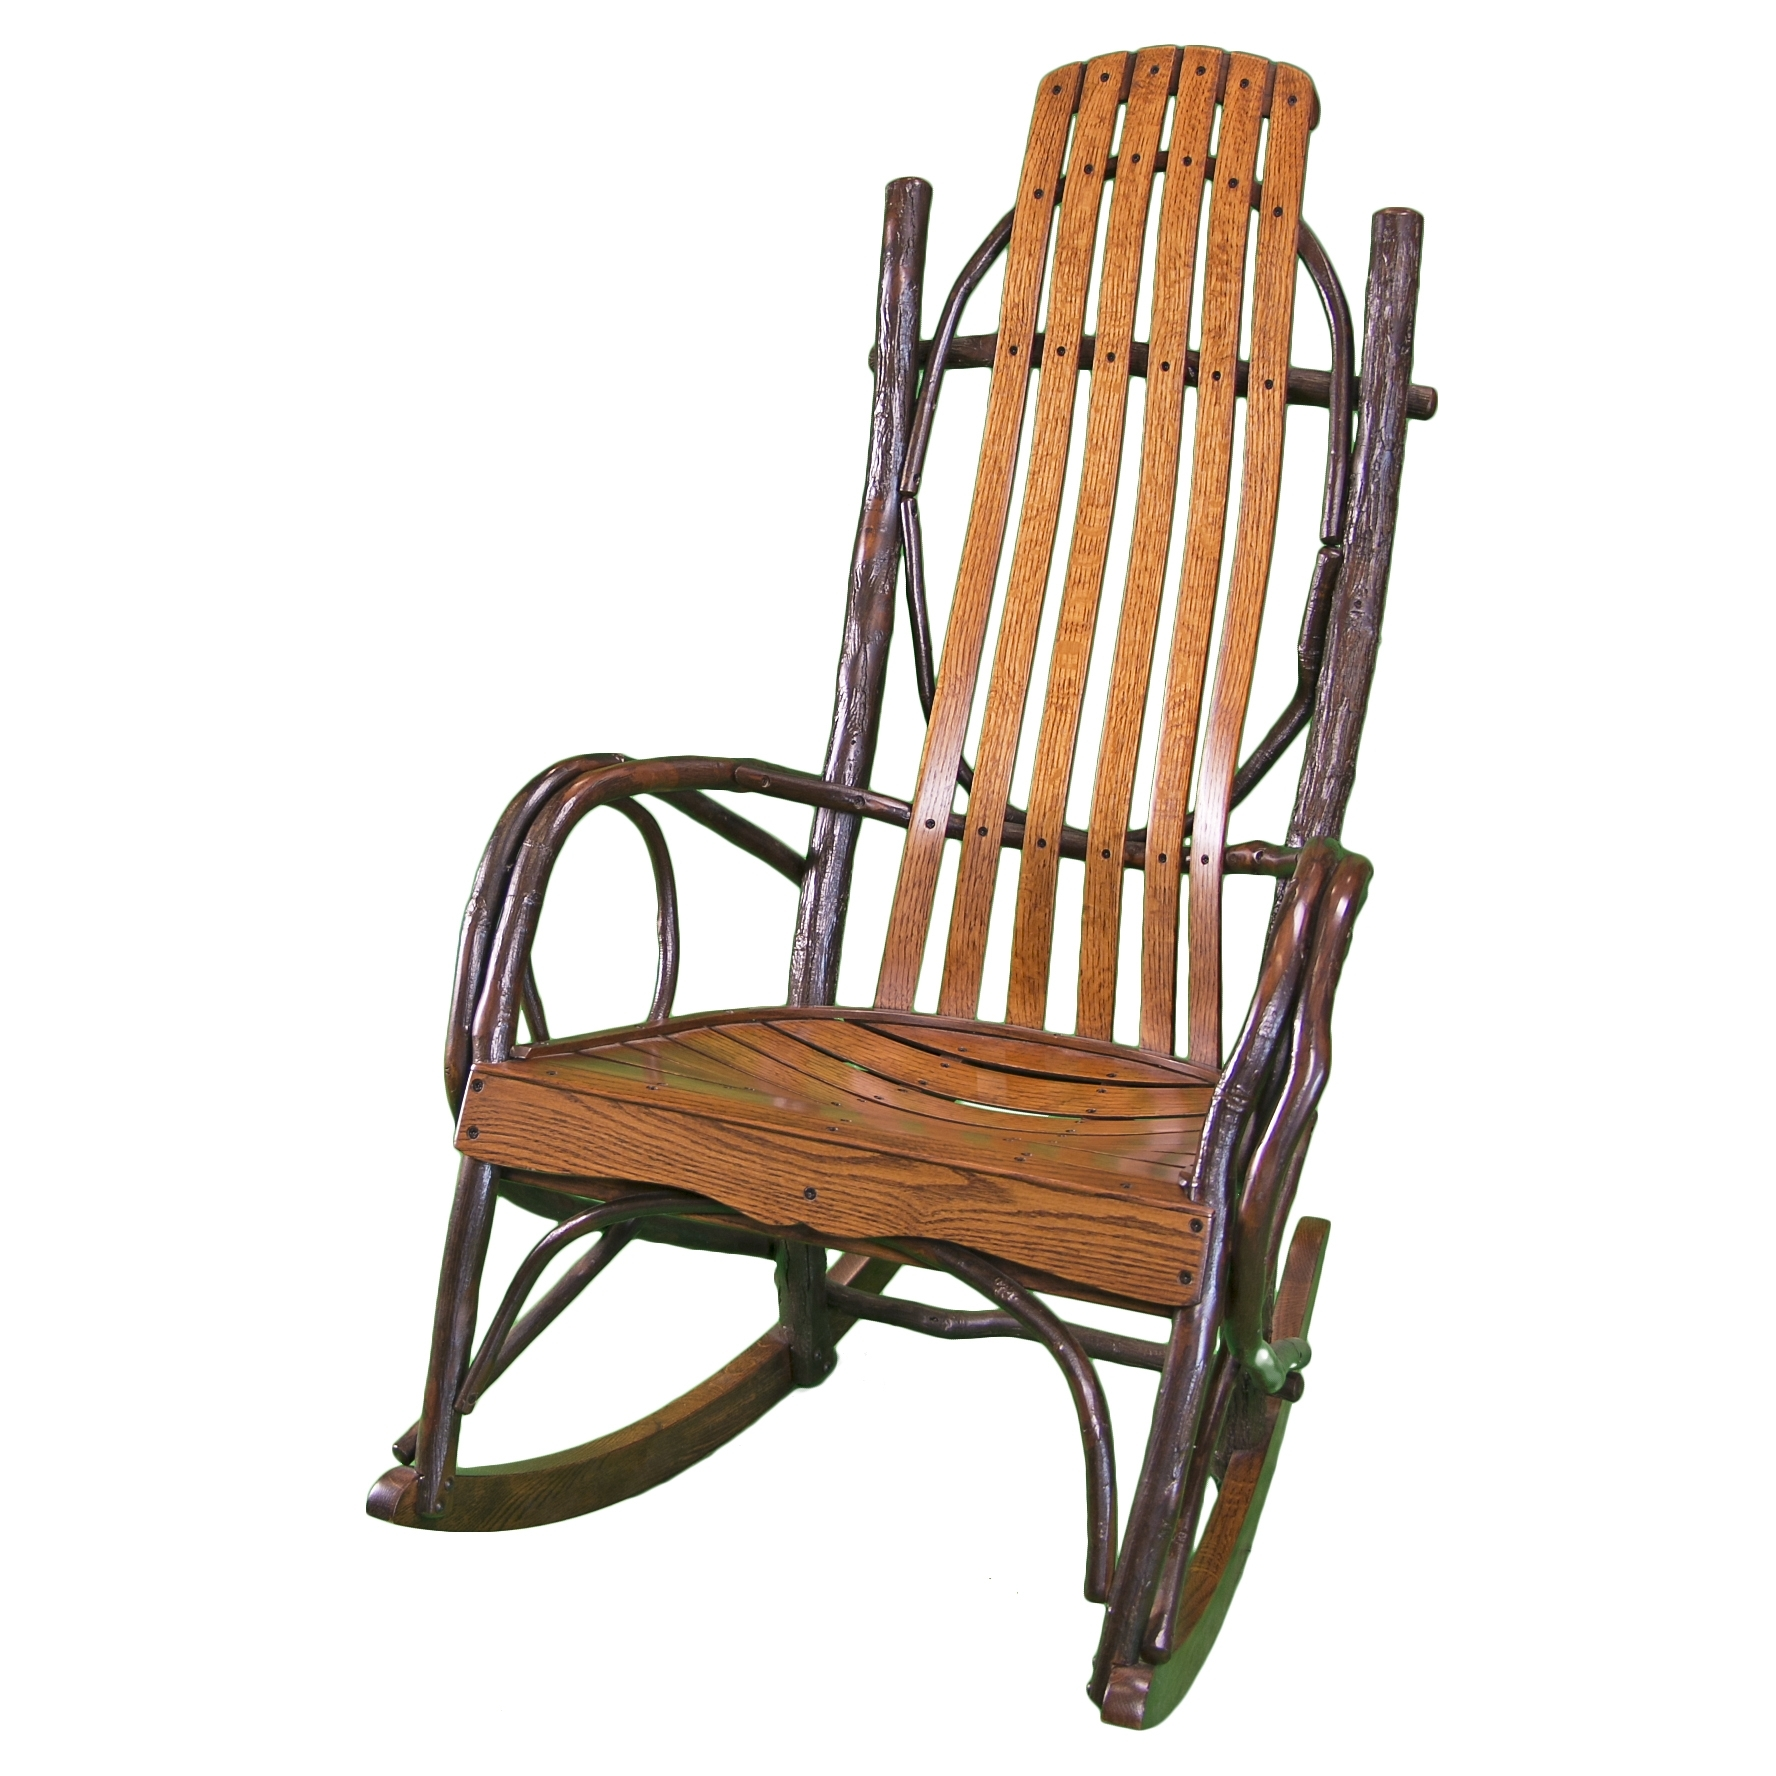 Most Recently Released Rocking Chair Outdoor Wooden Regarding Wooden Rocking Chair – Timber Lodge Furniture (View 6 of 15)